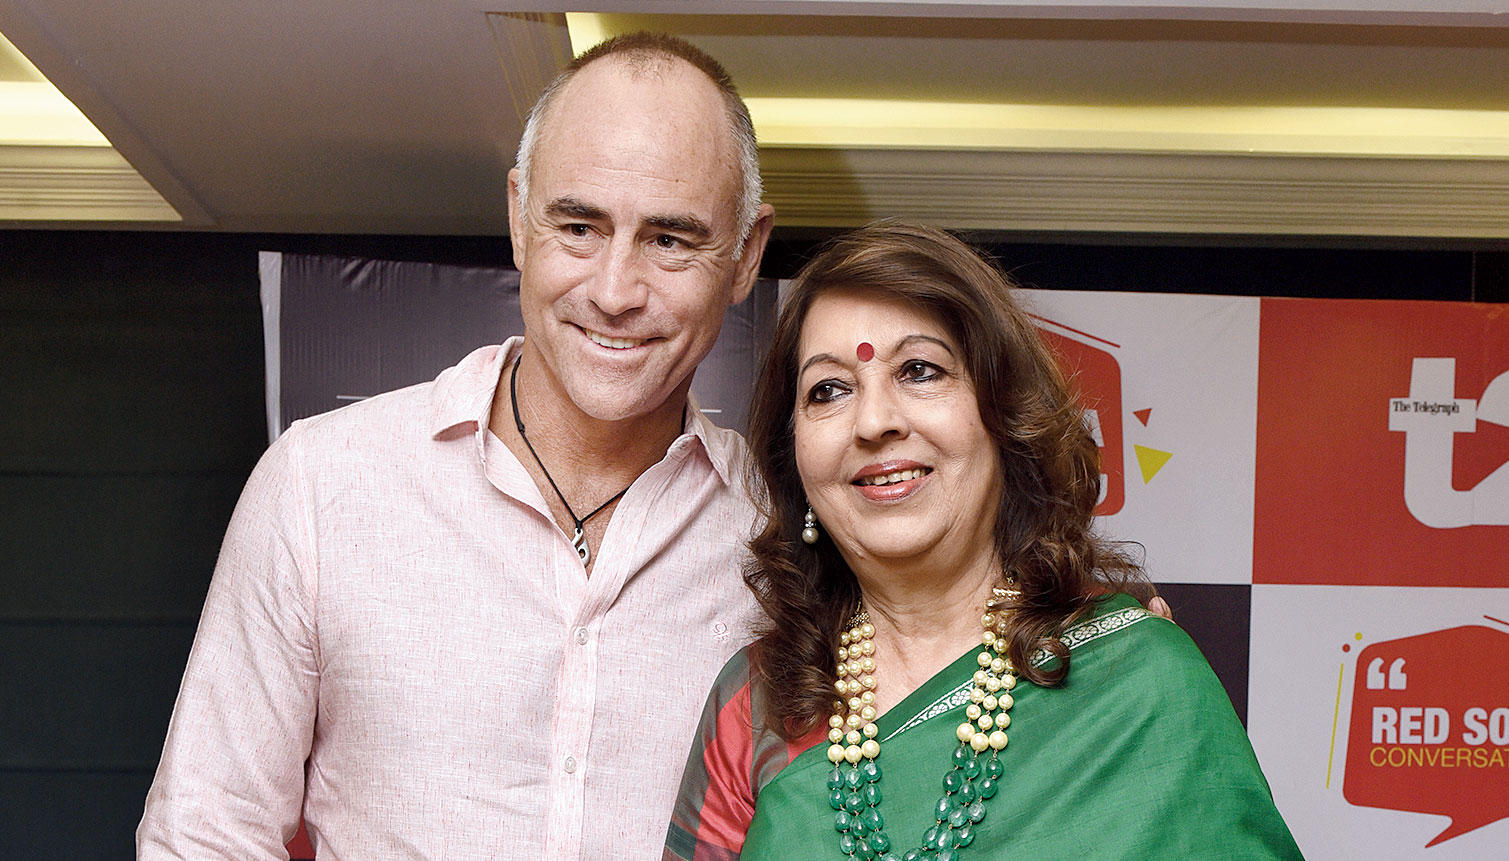 Paddy Upton with Rita Bhimani at Red Sofa Conversation presented by The Conclave, in association with t2 at The Conclave.